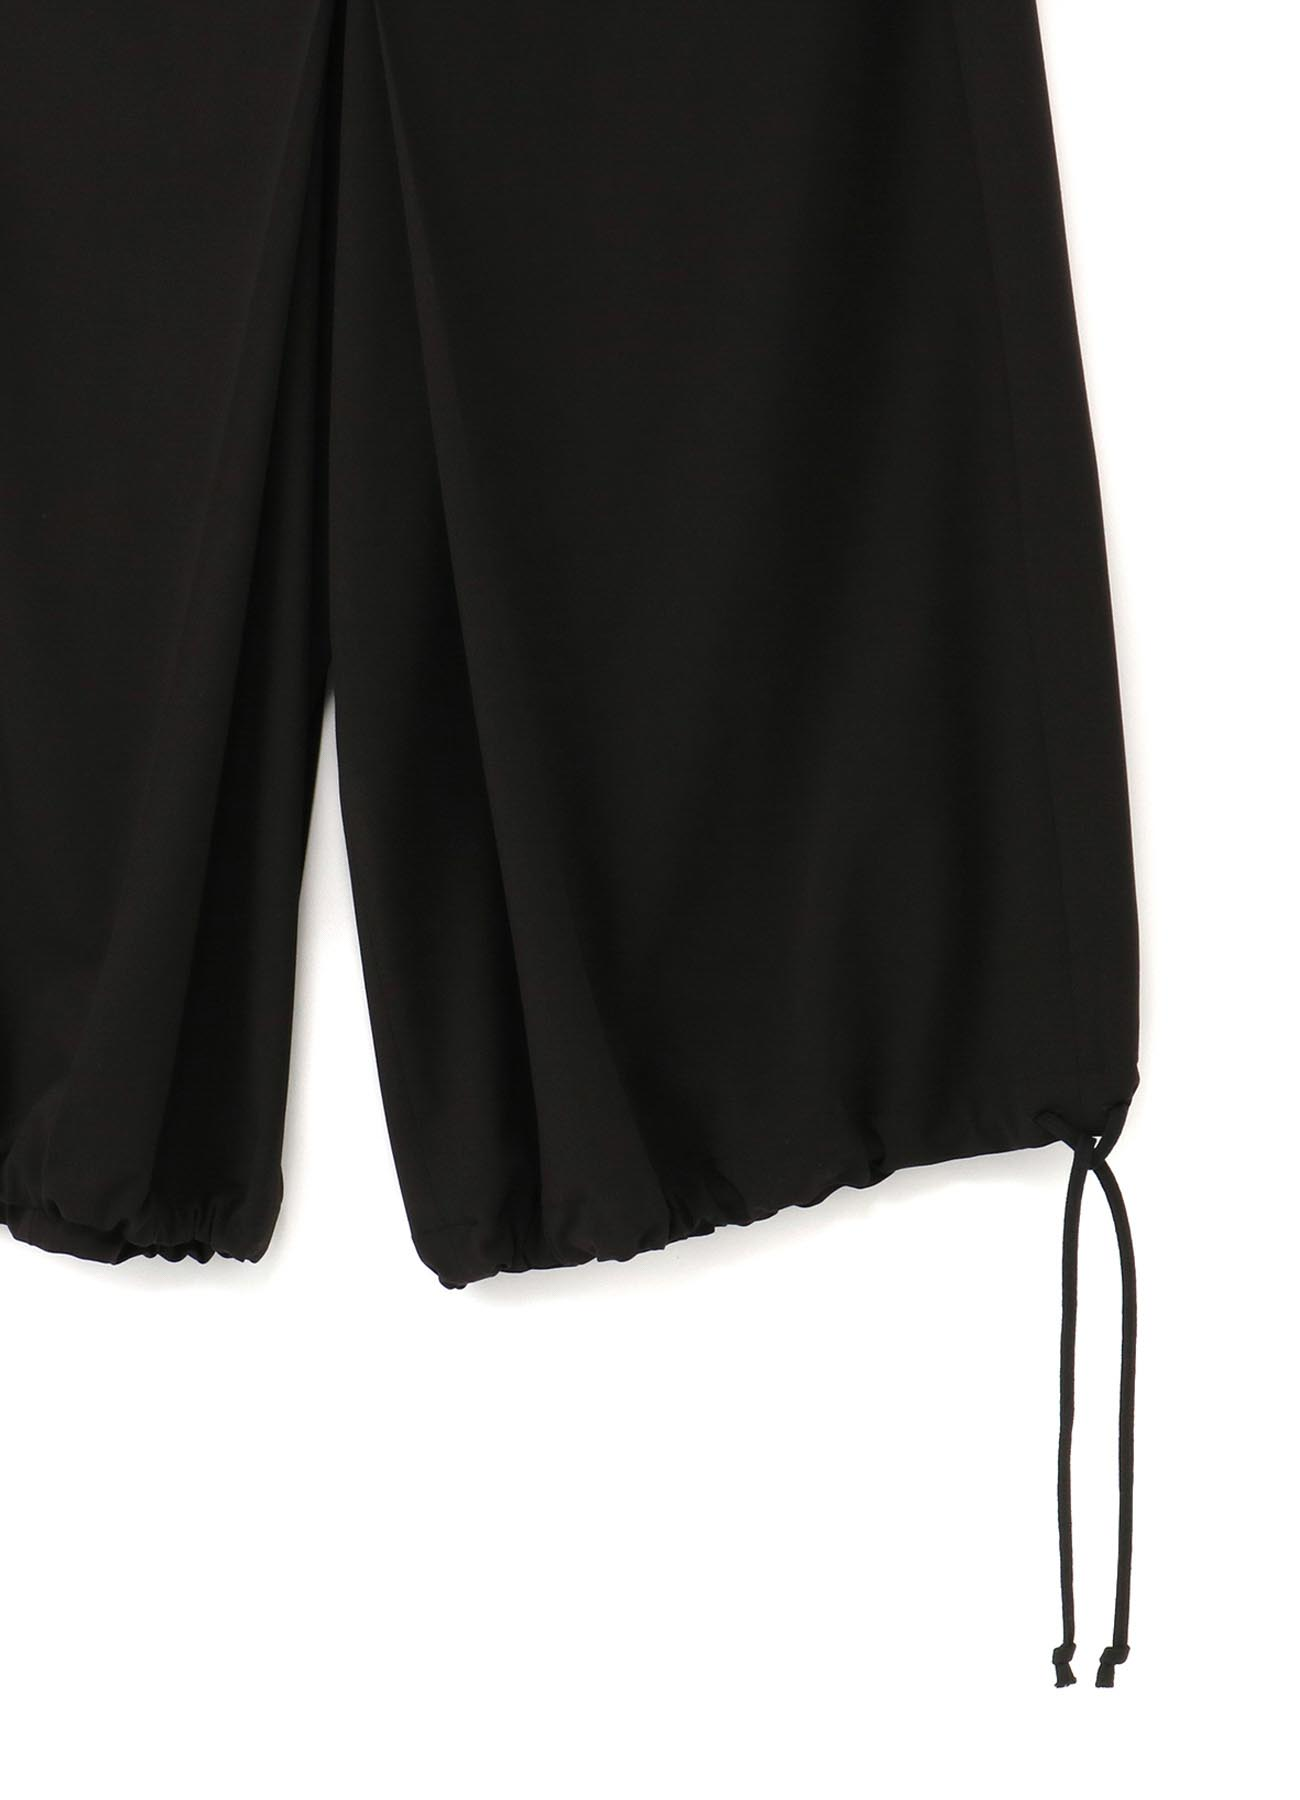 Pe/Rayon Gabardine Stretch Hakama Balloon Pants